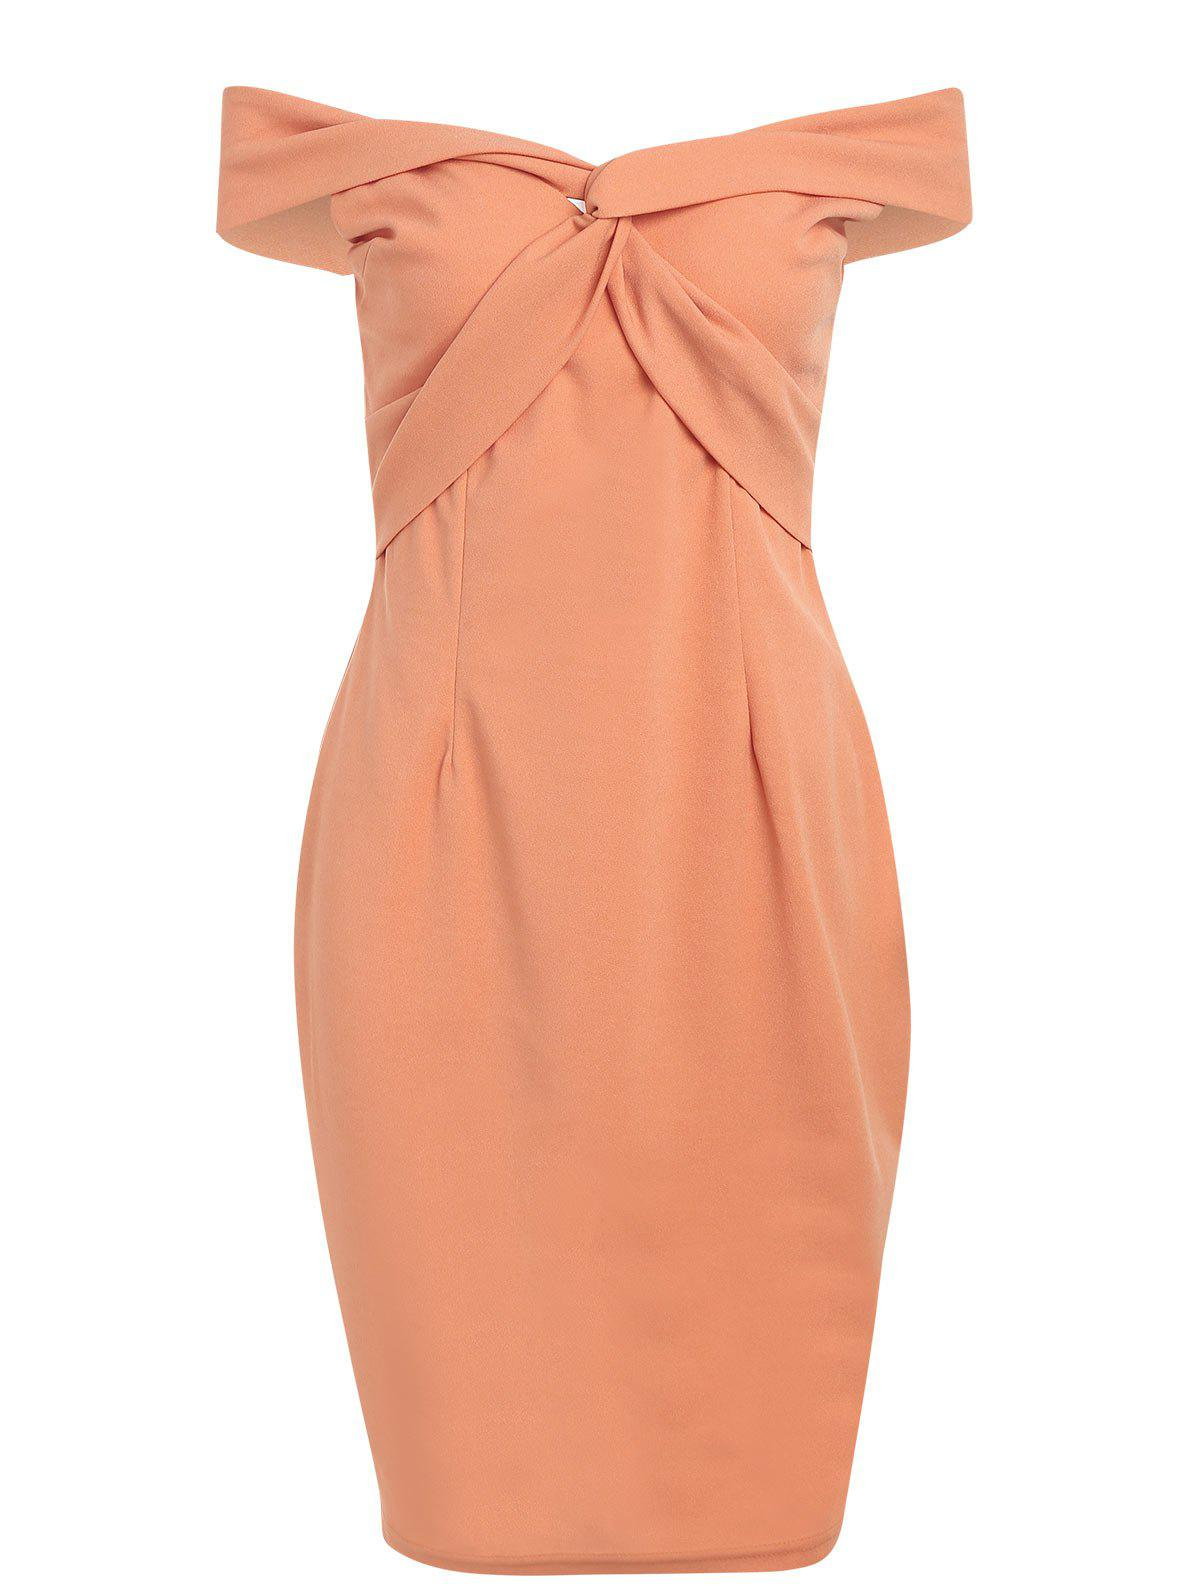 Off The Shoulder Twist Bodycon Dress - ORANGE 2XL